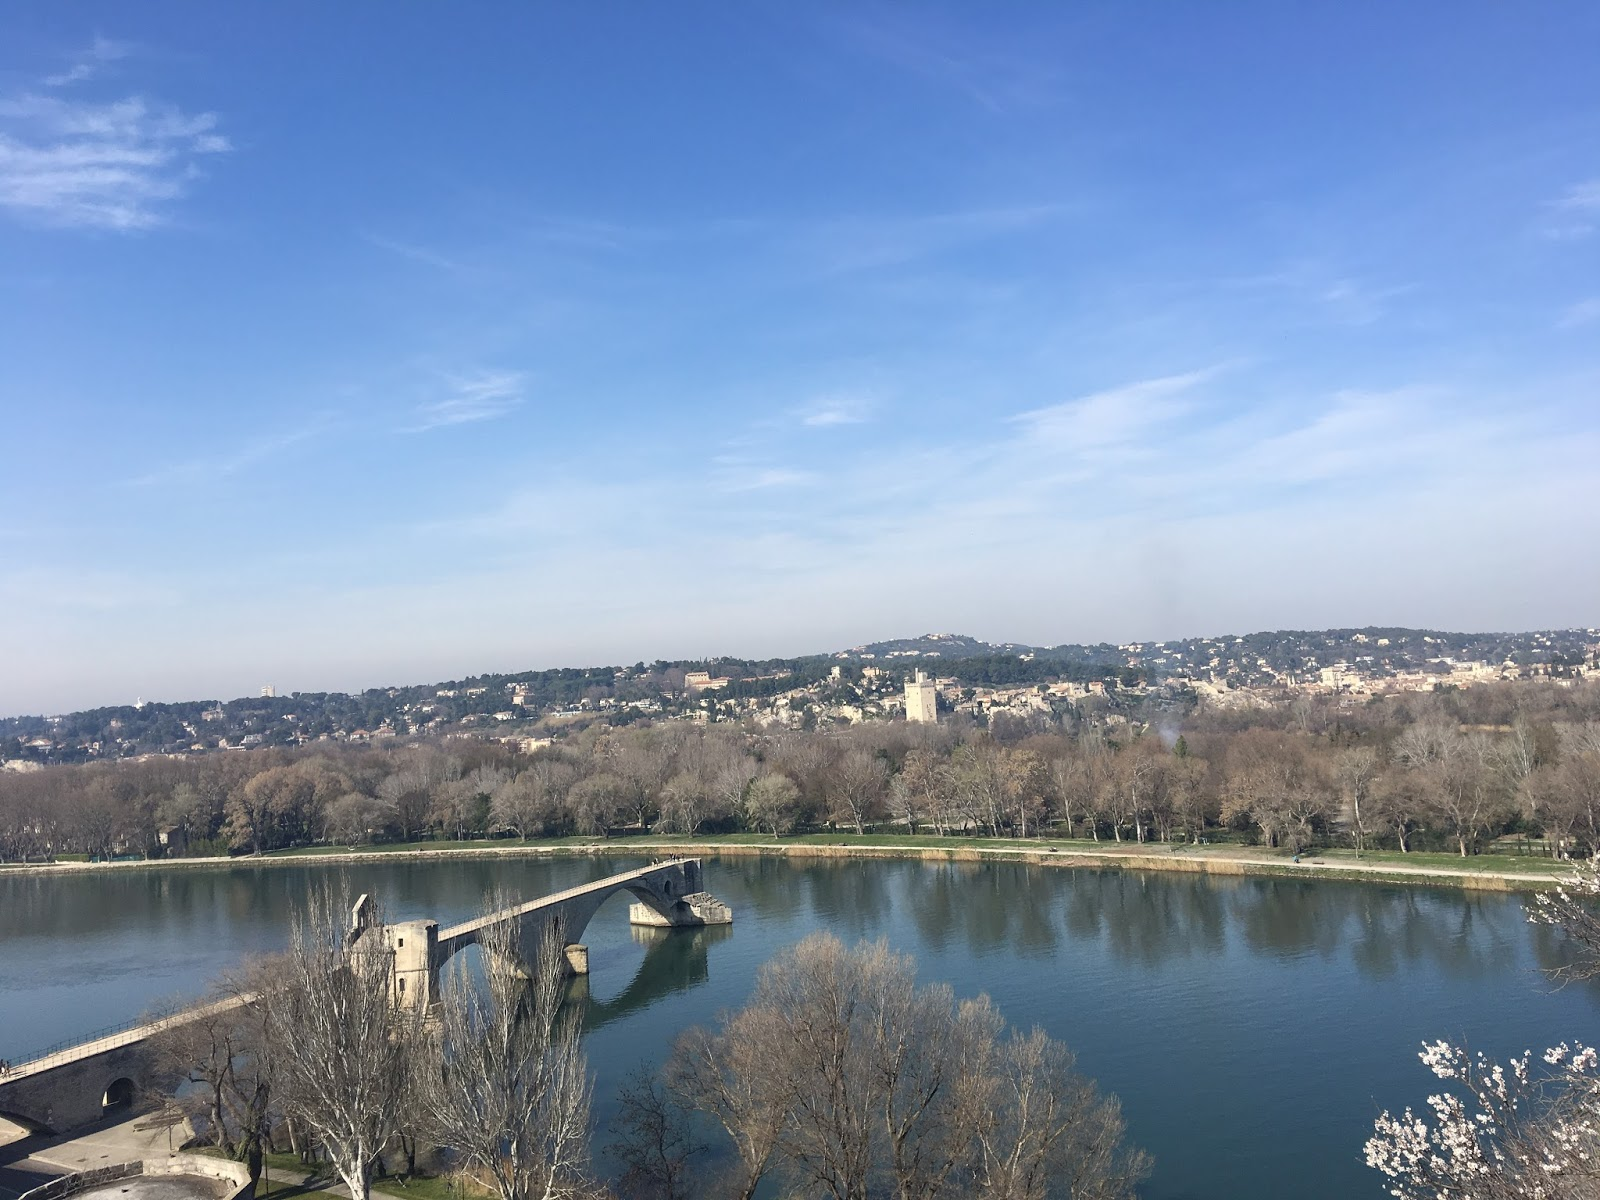 Travel: Un tour de la France en Cinq jours - Part 3: Avignon | Hollie In Wanderlust